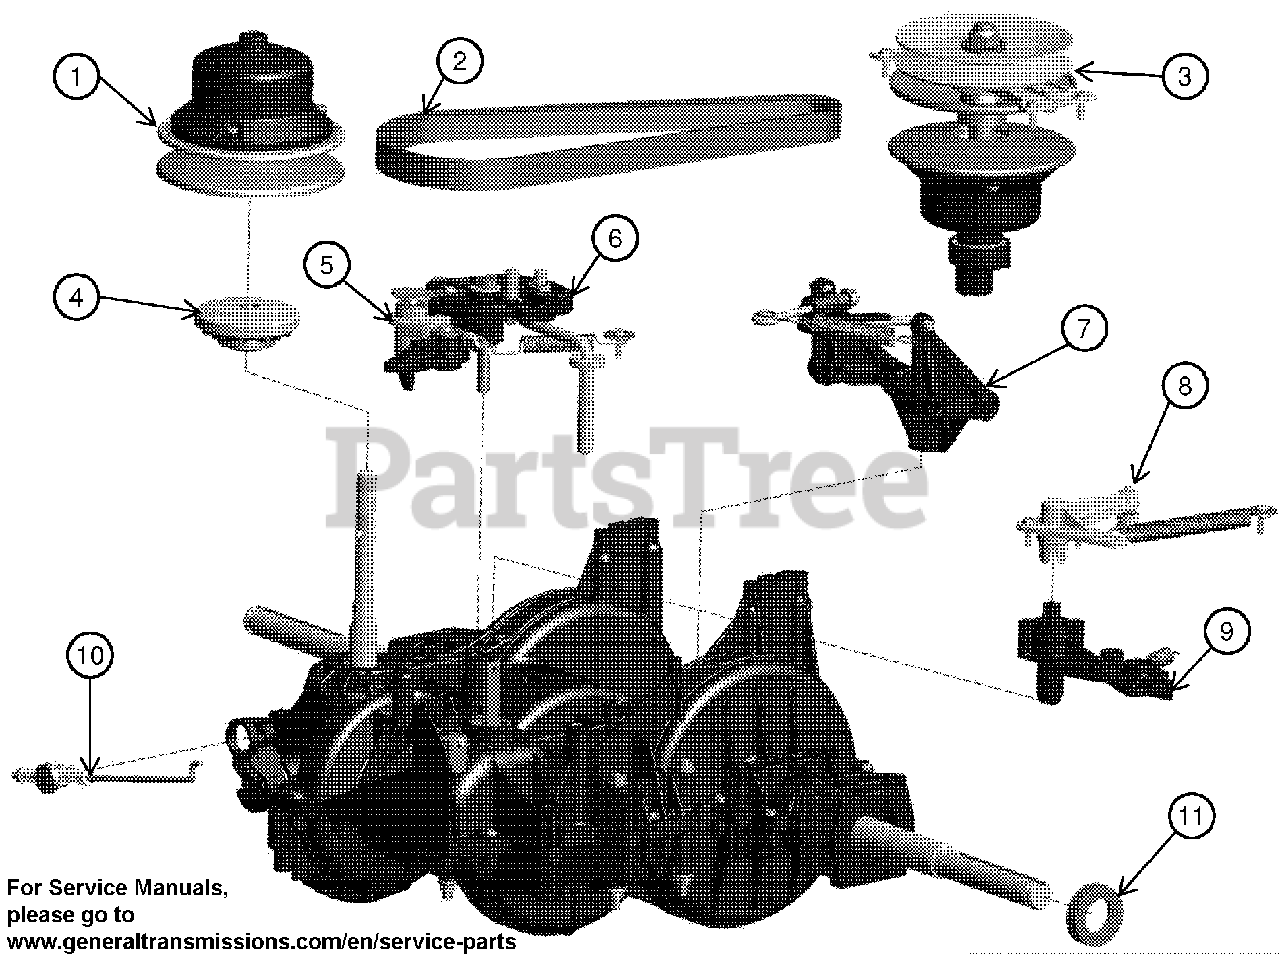 Ariens RS800-SD-P (21549005) - Ariens General Transmission Transmission -  584973901 Parts Lookup with Diagrams | PartsTreePartsTree